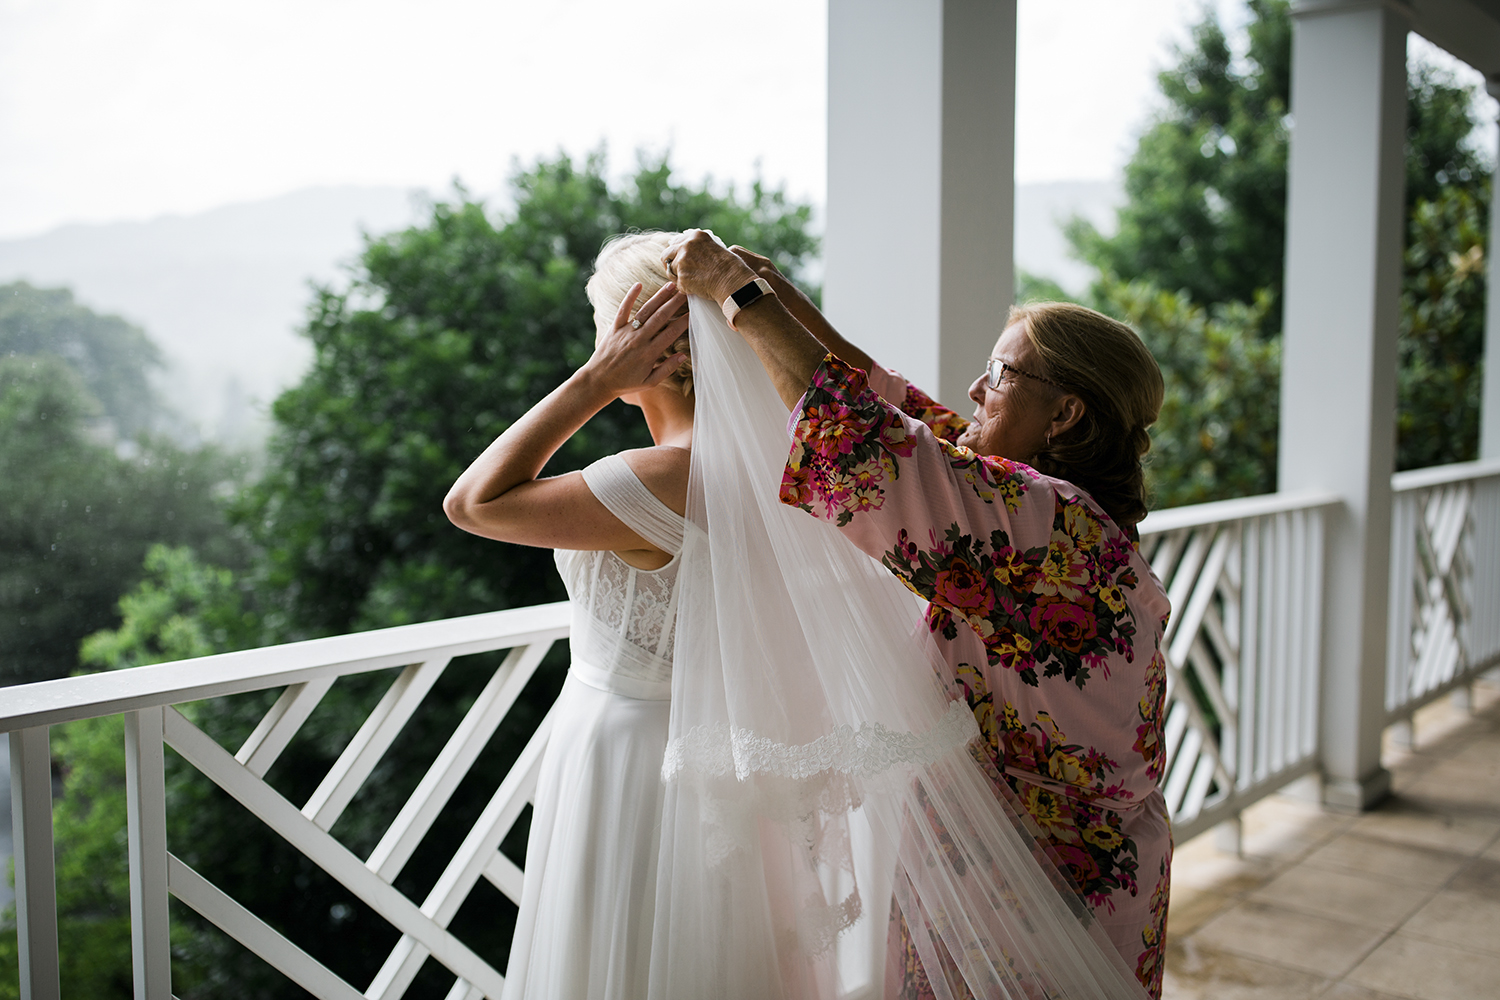 Jessica's mom helps her get ready at the Greenbrier in White Sulphur Springs, WV. The house that they rented to get ready in had this gorgeous balcony outside the bedroom and we were able to use it for a lot of her bridal portraits, first look, getting ready shots and details.